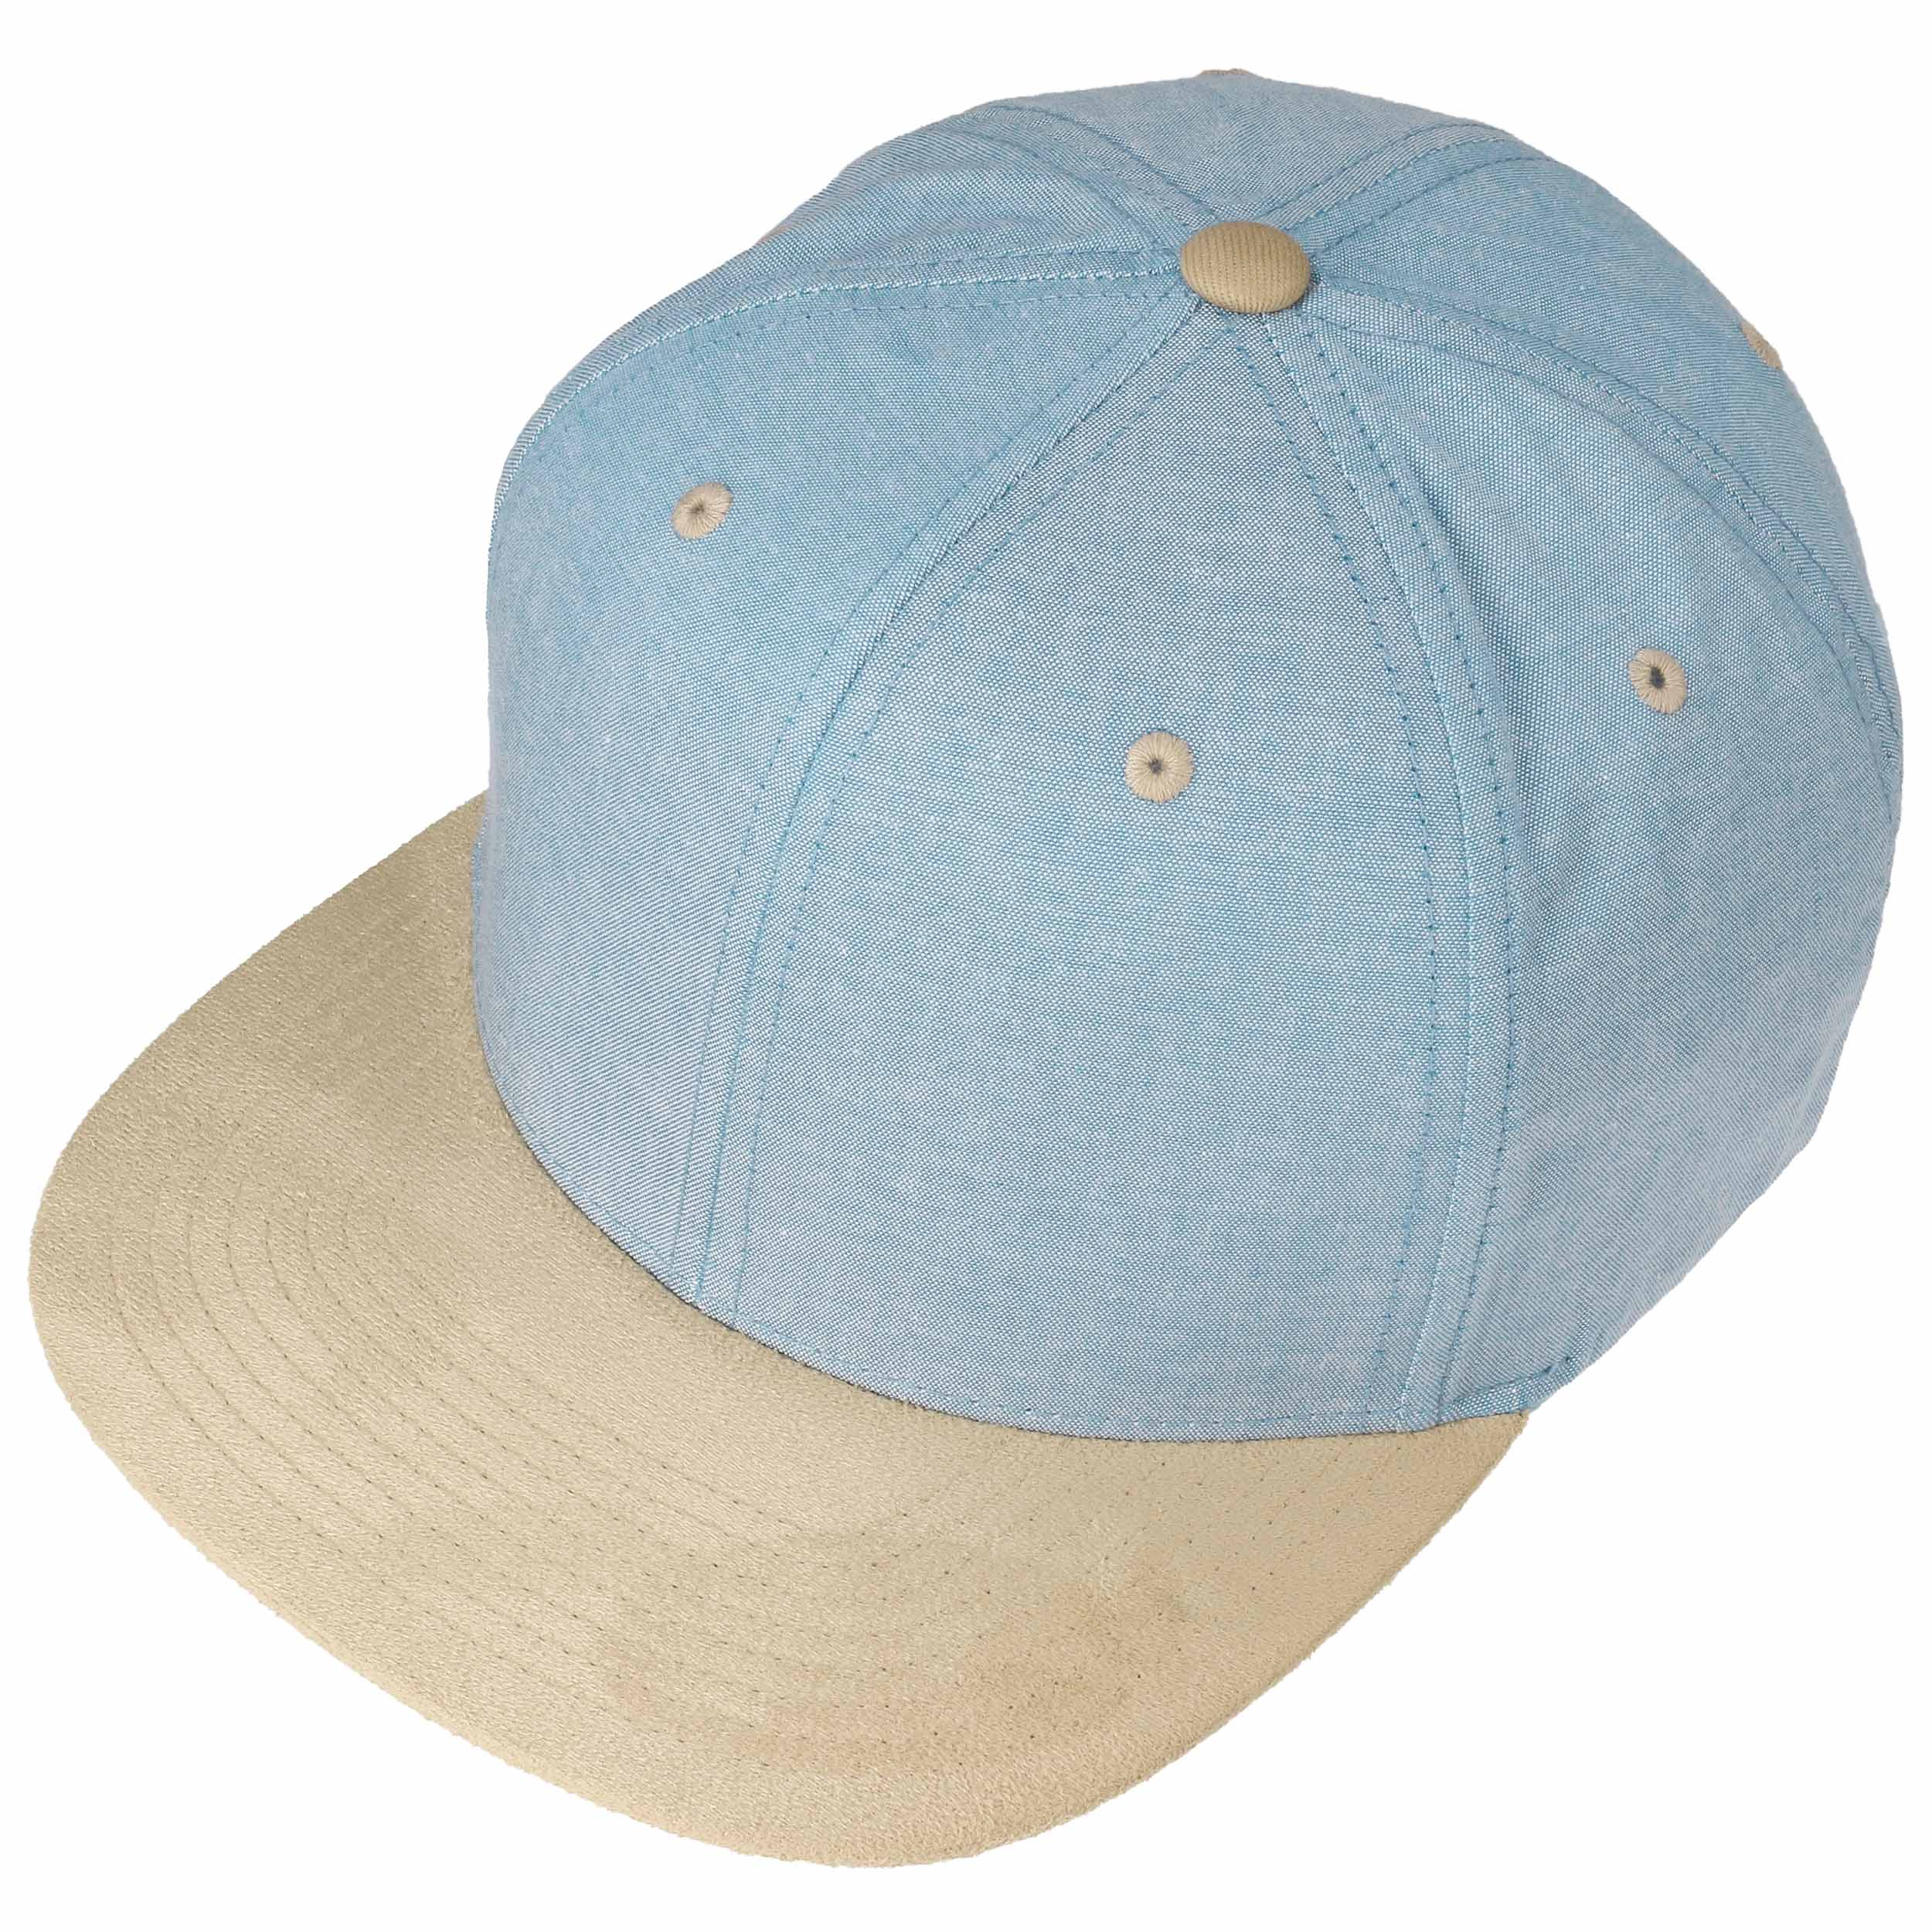 Chambray Suede Snapback Cap - black 1 · Chambray Suede Snapback Cap - light  blue 1 ... d998a1281ffb